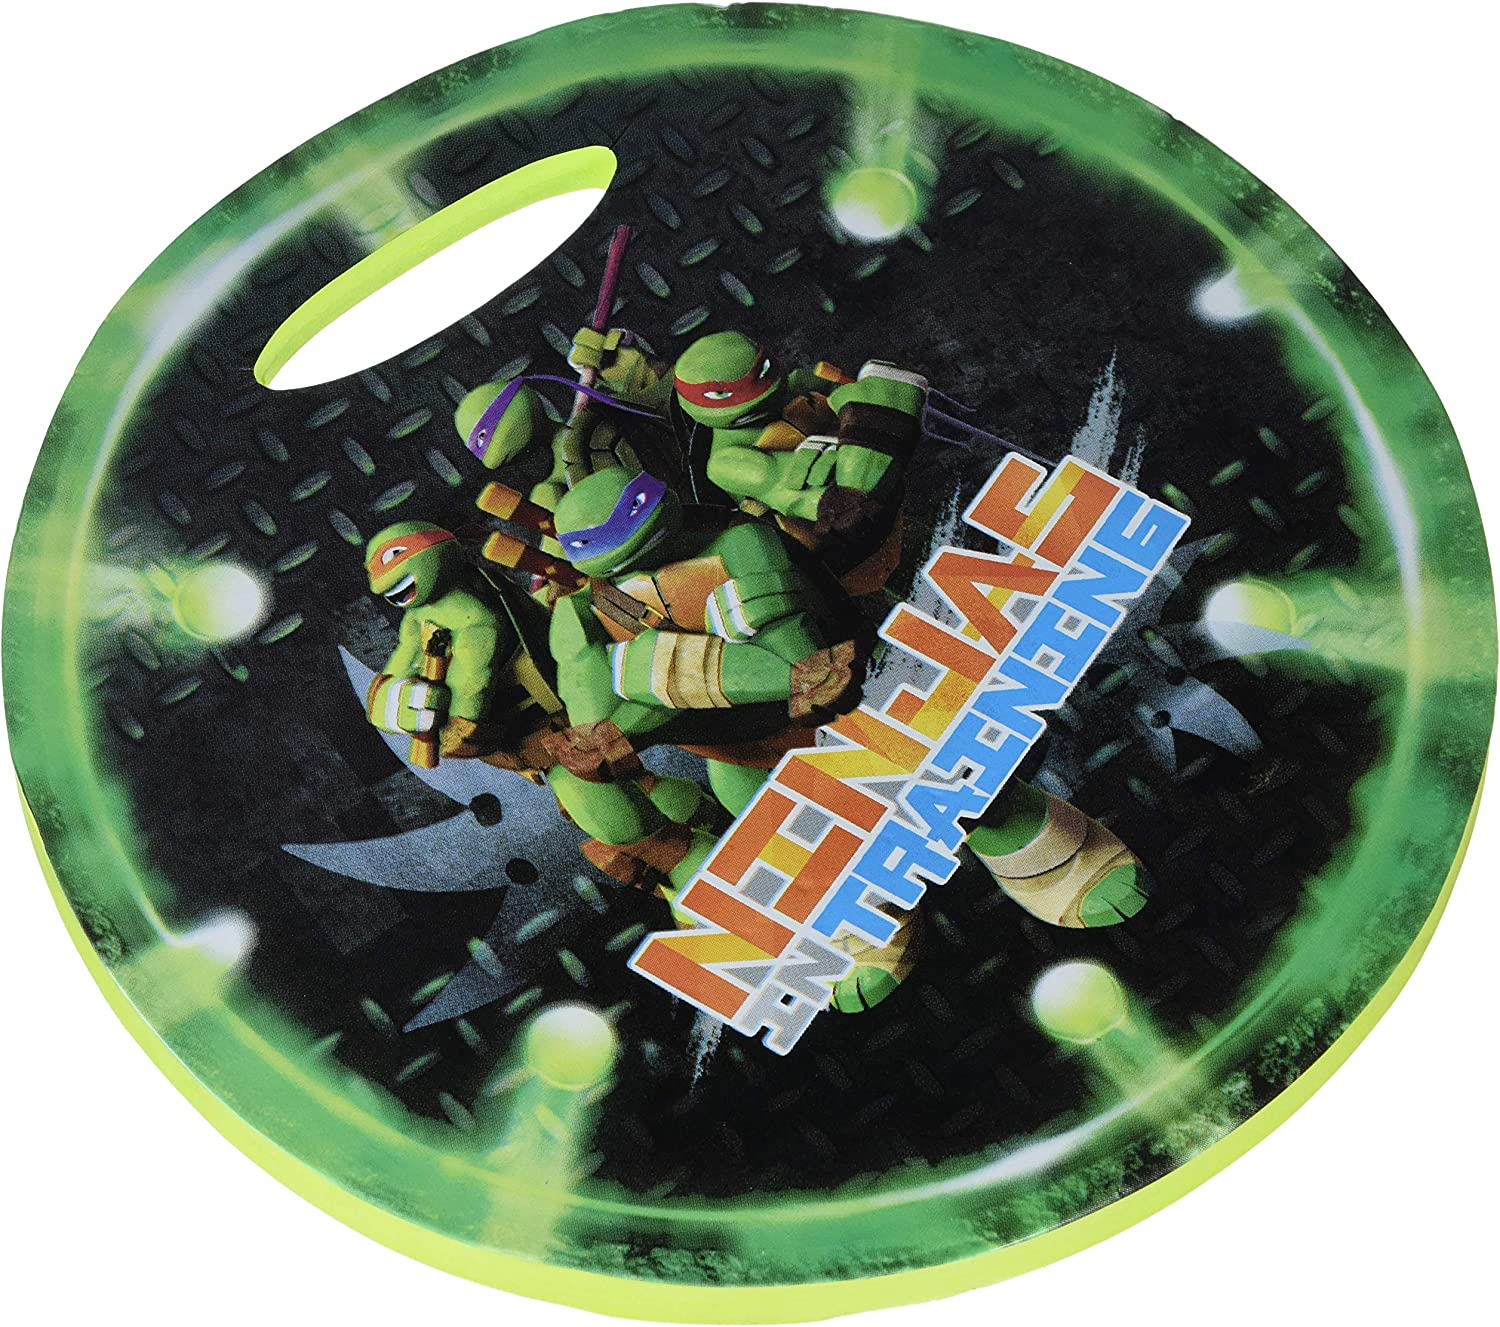 Nickelodeon Teenage Mutant Ninja Turtles Kids Garden Kneeling Pad, 200K